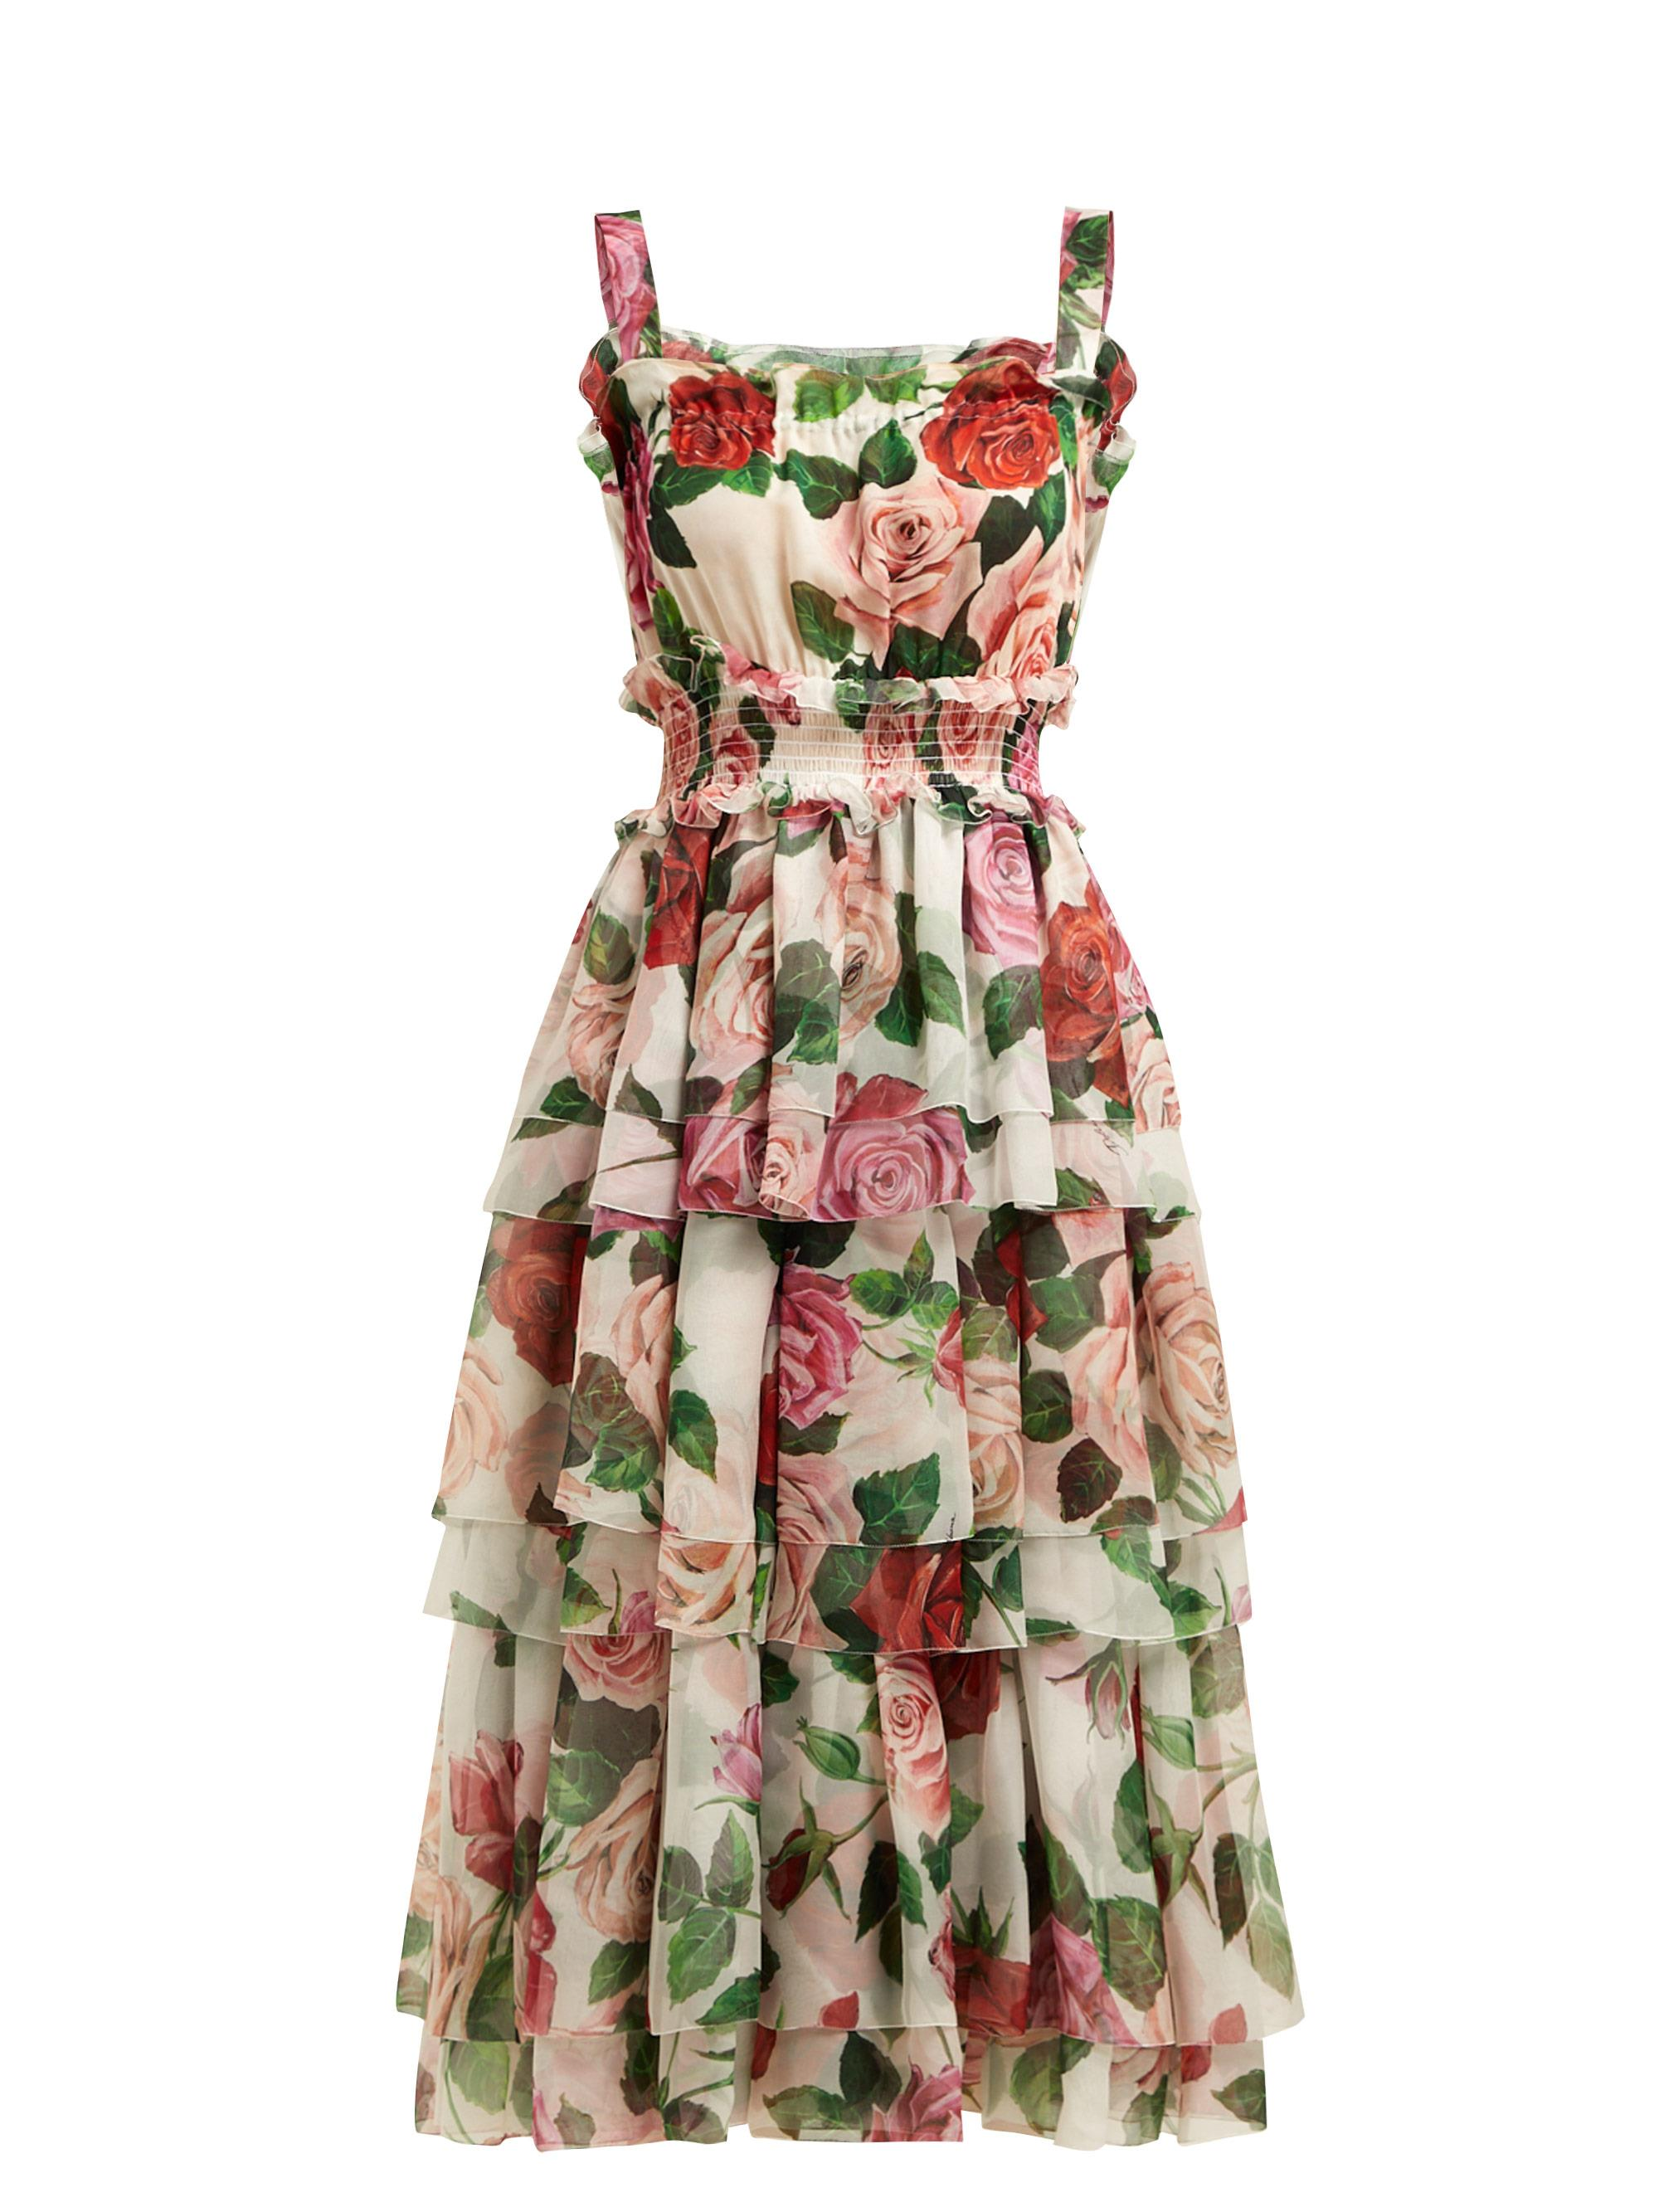 2. Dolce & Gabbana Rose-Print Tiered Silk-Chiffon Midi Dress $4,015 from www.matchesfashion.com